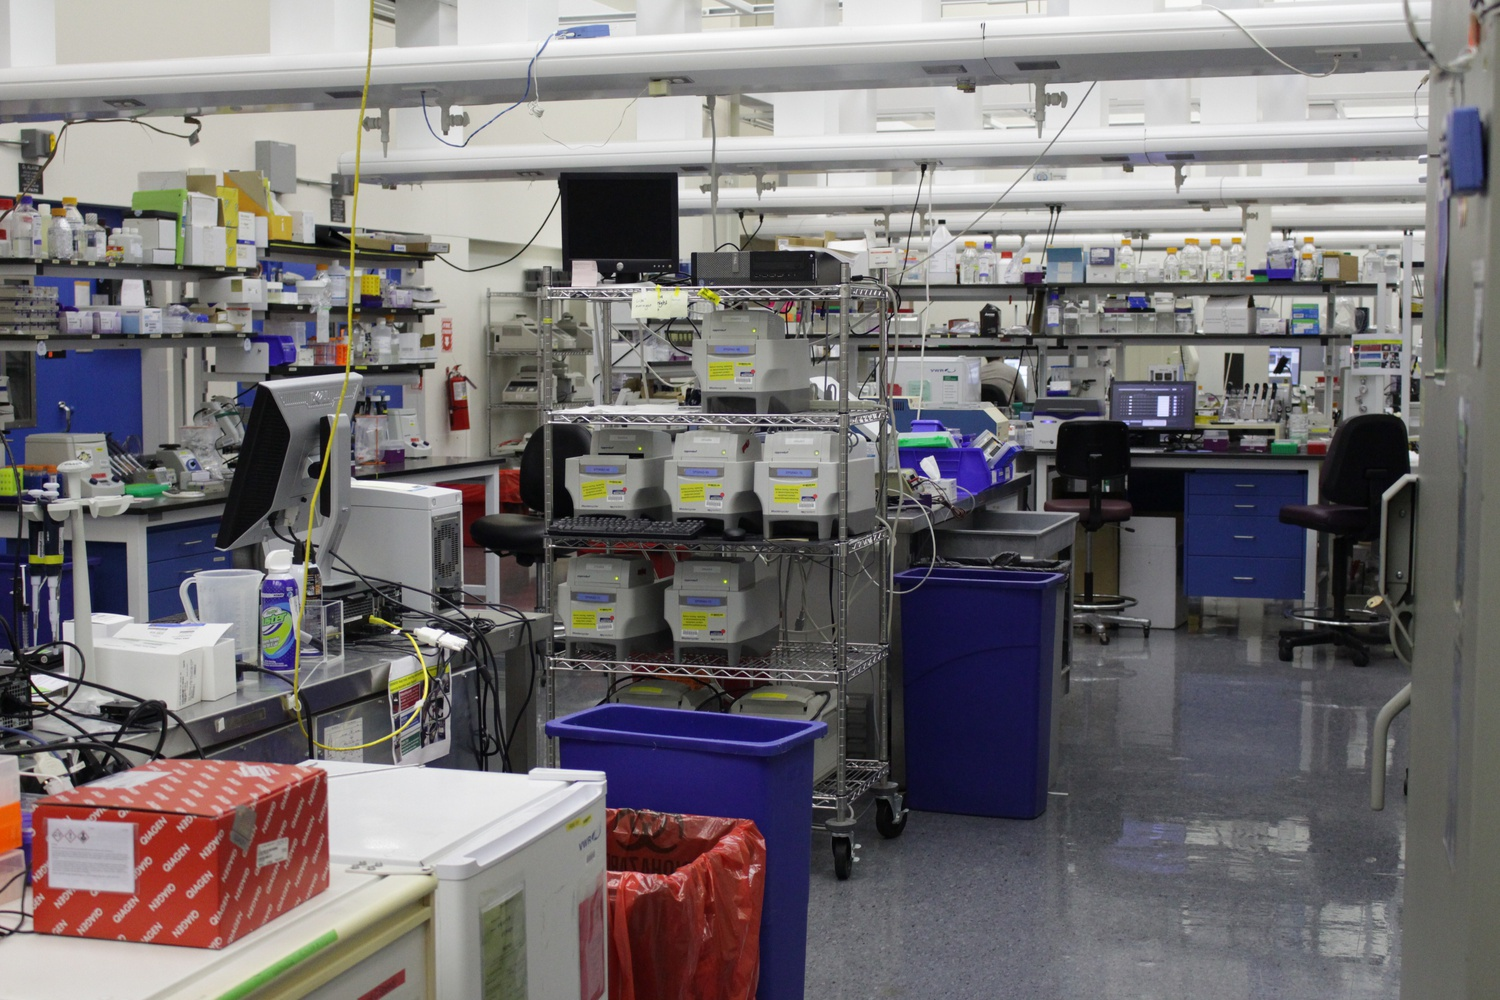 At the Broad Institute, researchers perform technical procedures and experiments in the wet laboratories